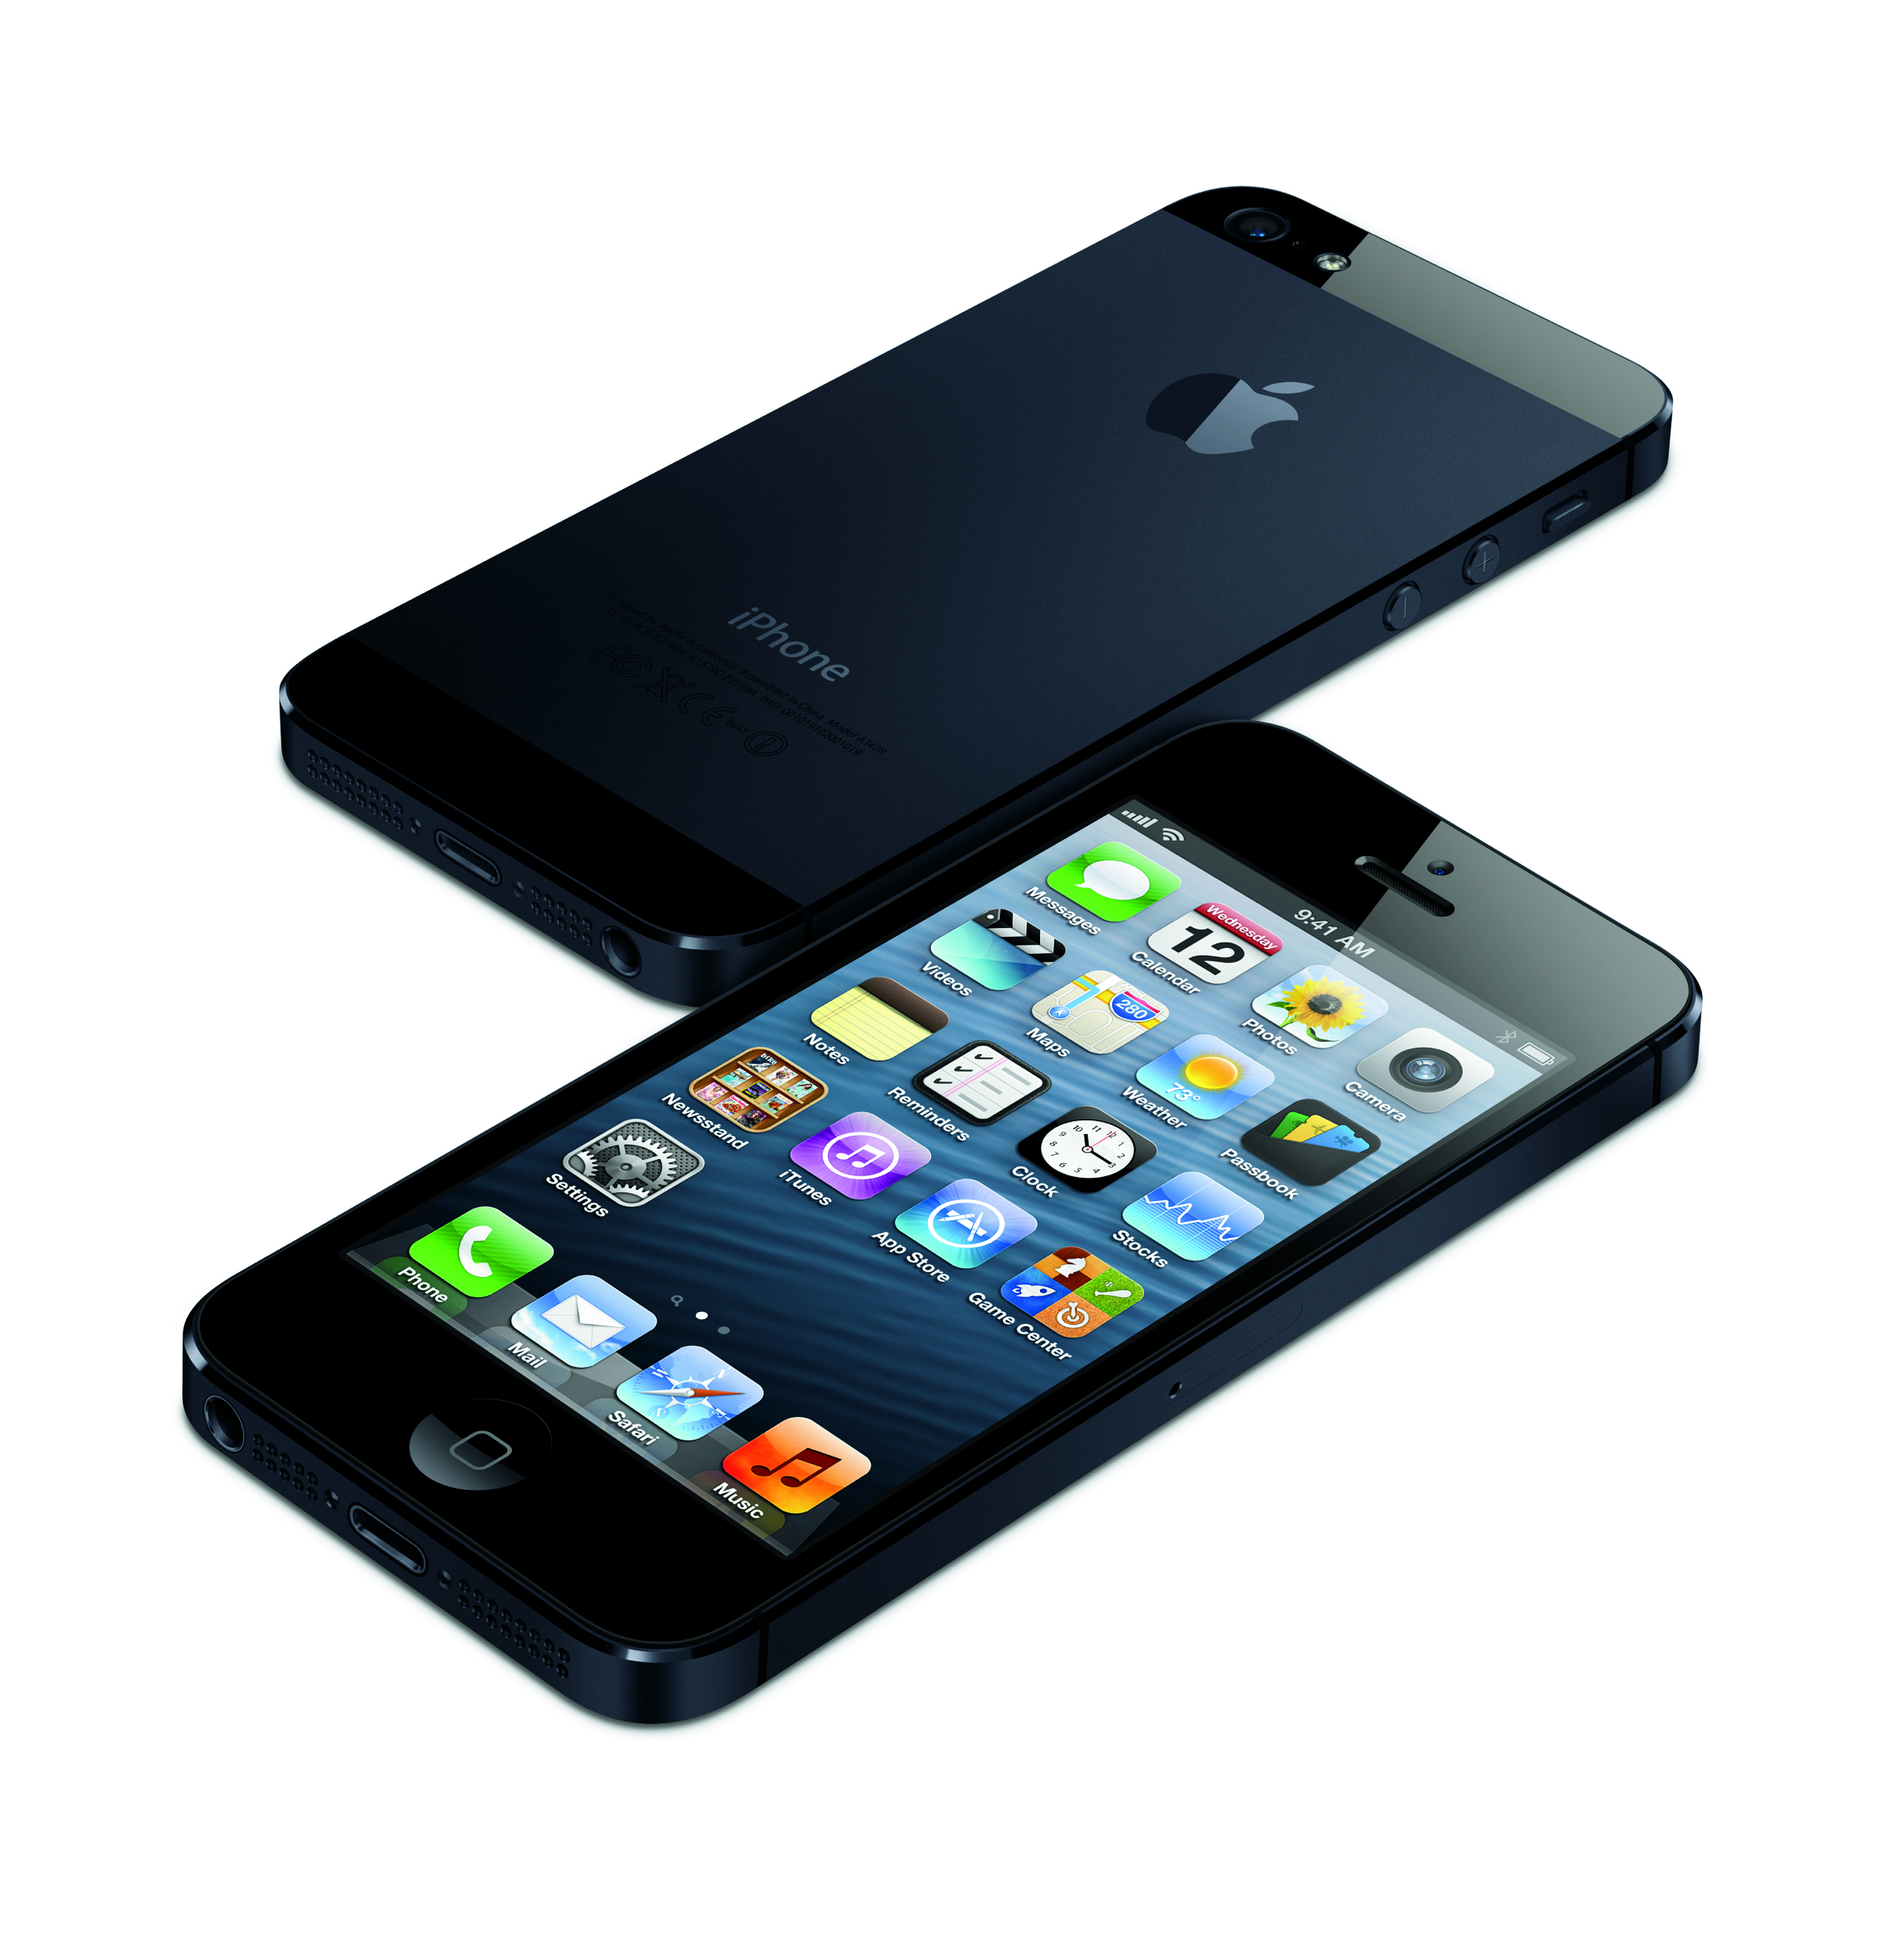 Iphone 5 back png apple iphone 5 16gb - The Iphone 5 Is The First Iphone To See A Bigger Display Profile Boasting A 4 Inch Screen With 16 9 Aspect Ratio